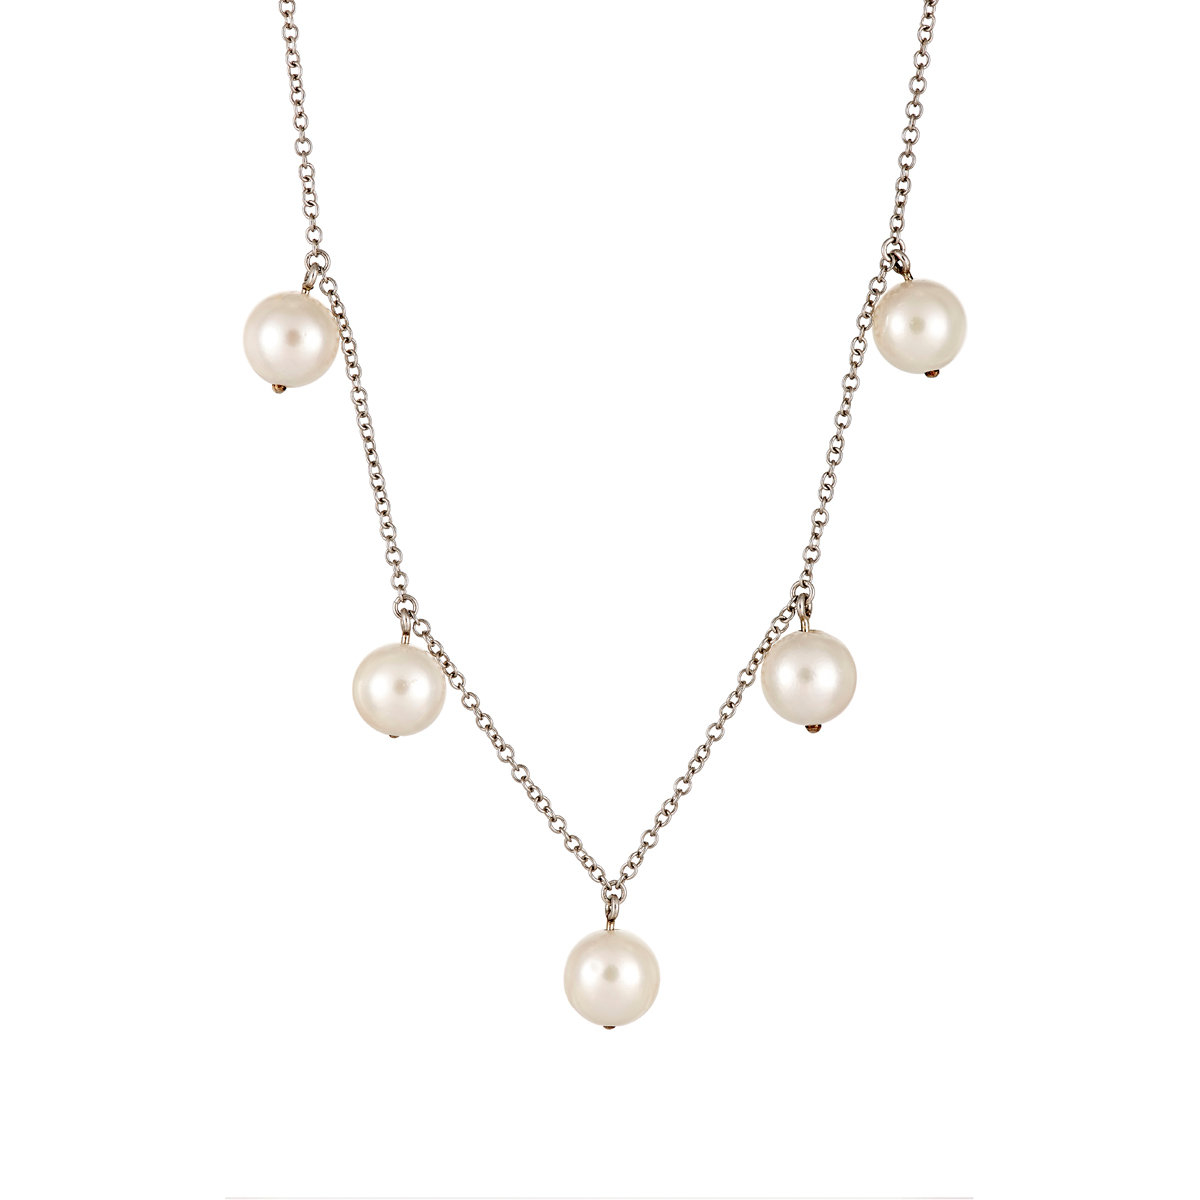 Pearl Platinum: Cathy Waterman Women's Pearl & Platinum Necklace In